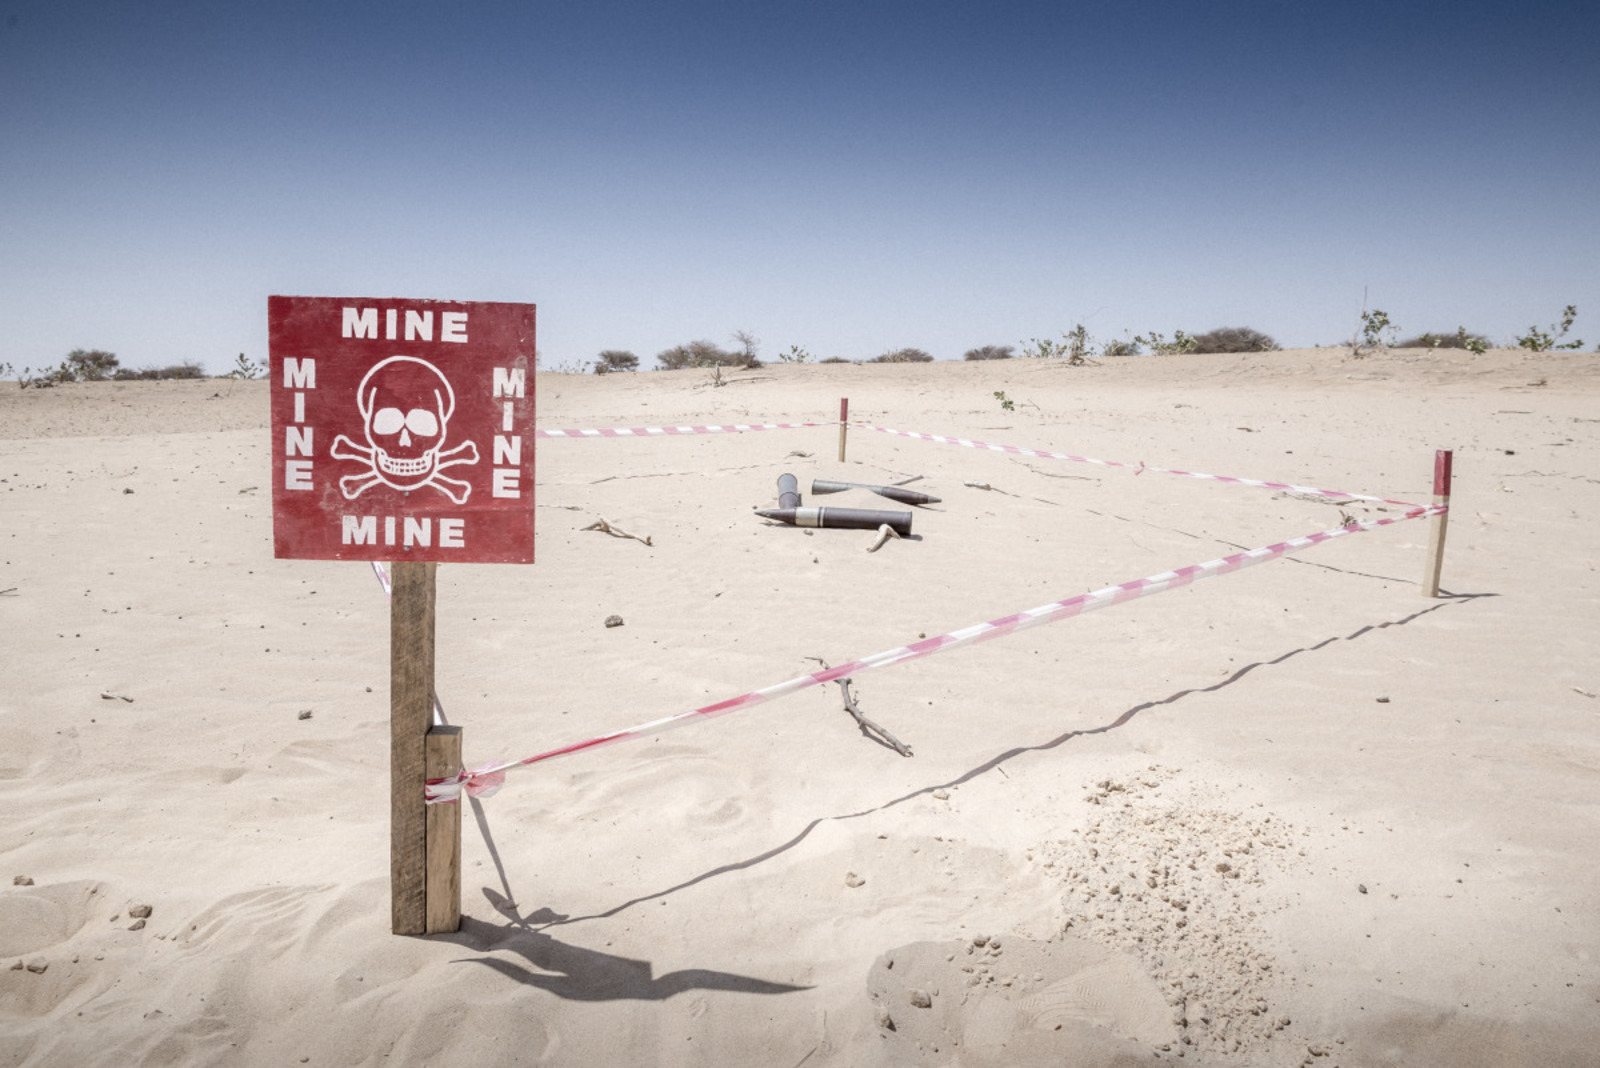 c_Benoit-Almeras_HI__A_mine_explosive_sign_place_in_Chad_by_HI.jpg